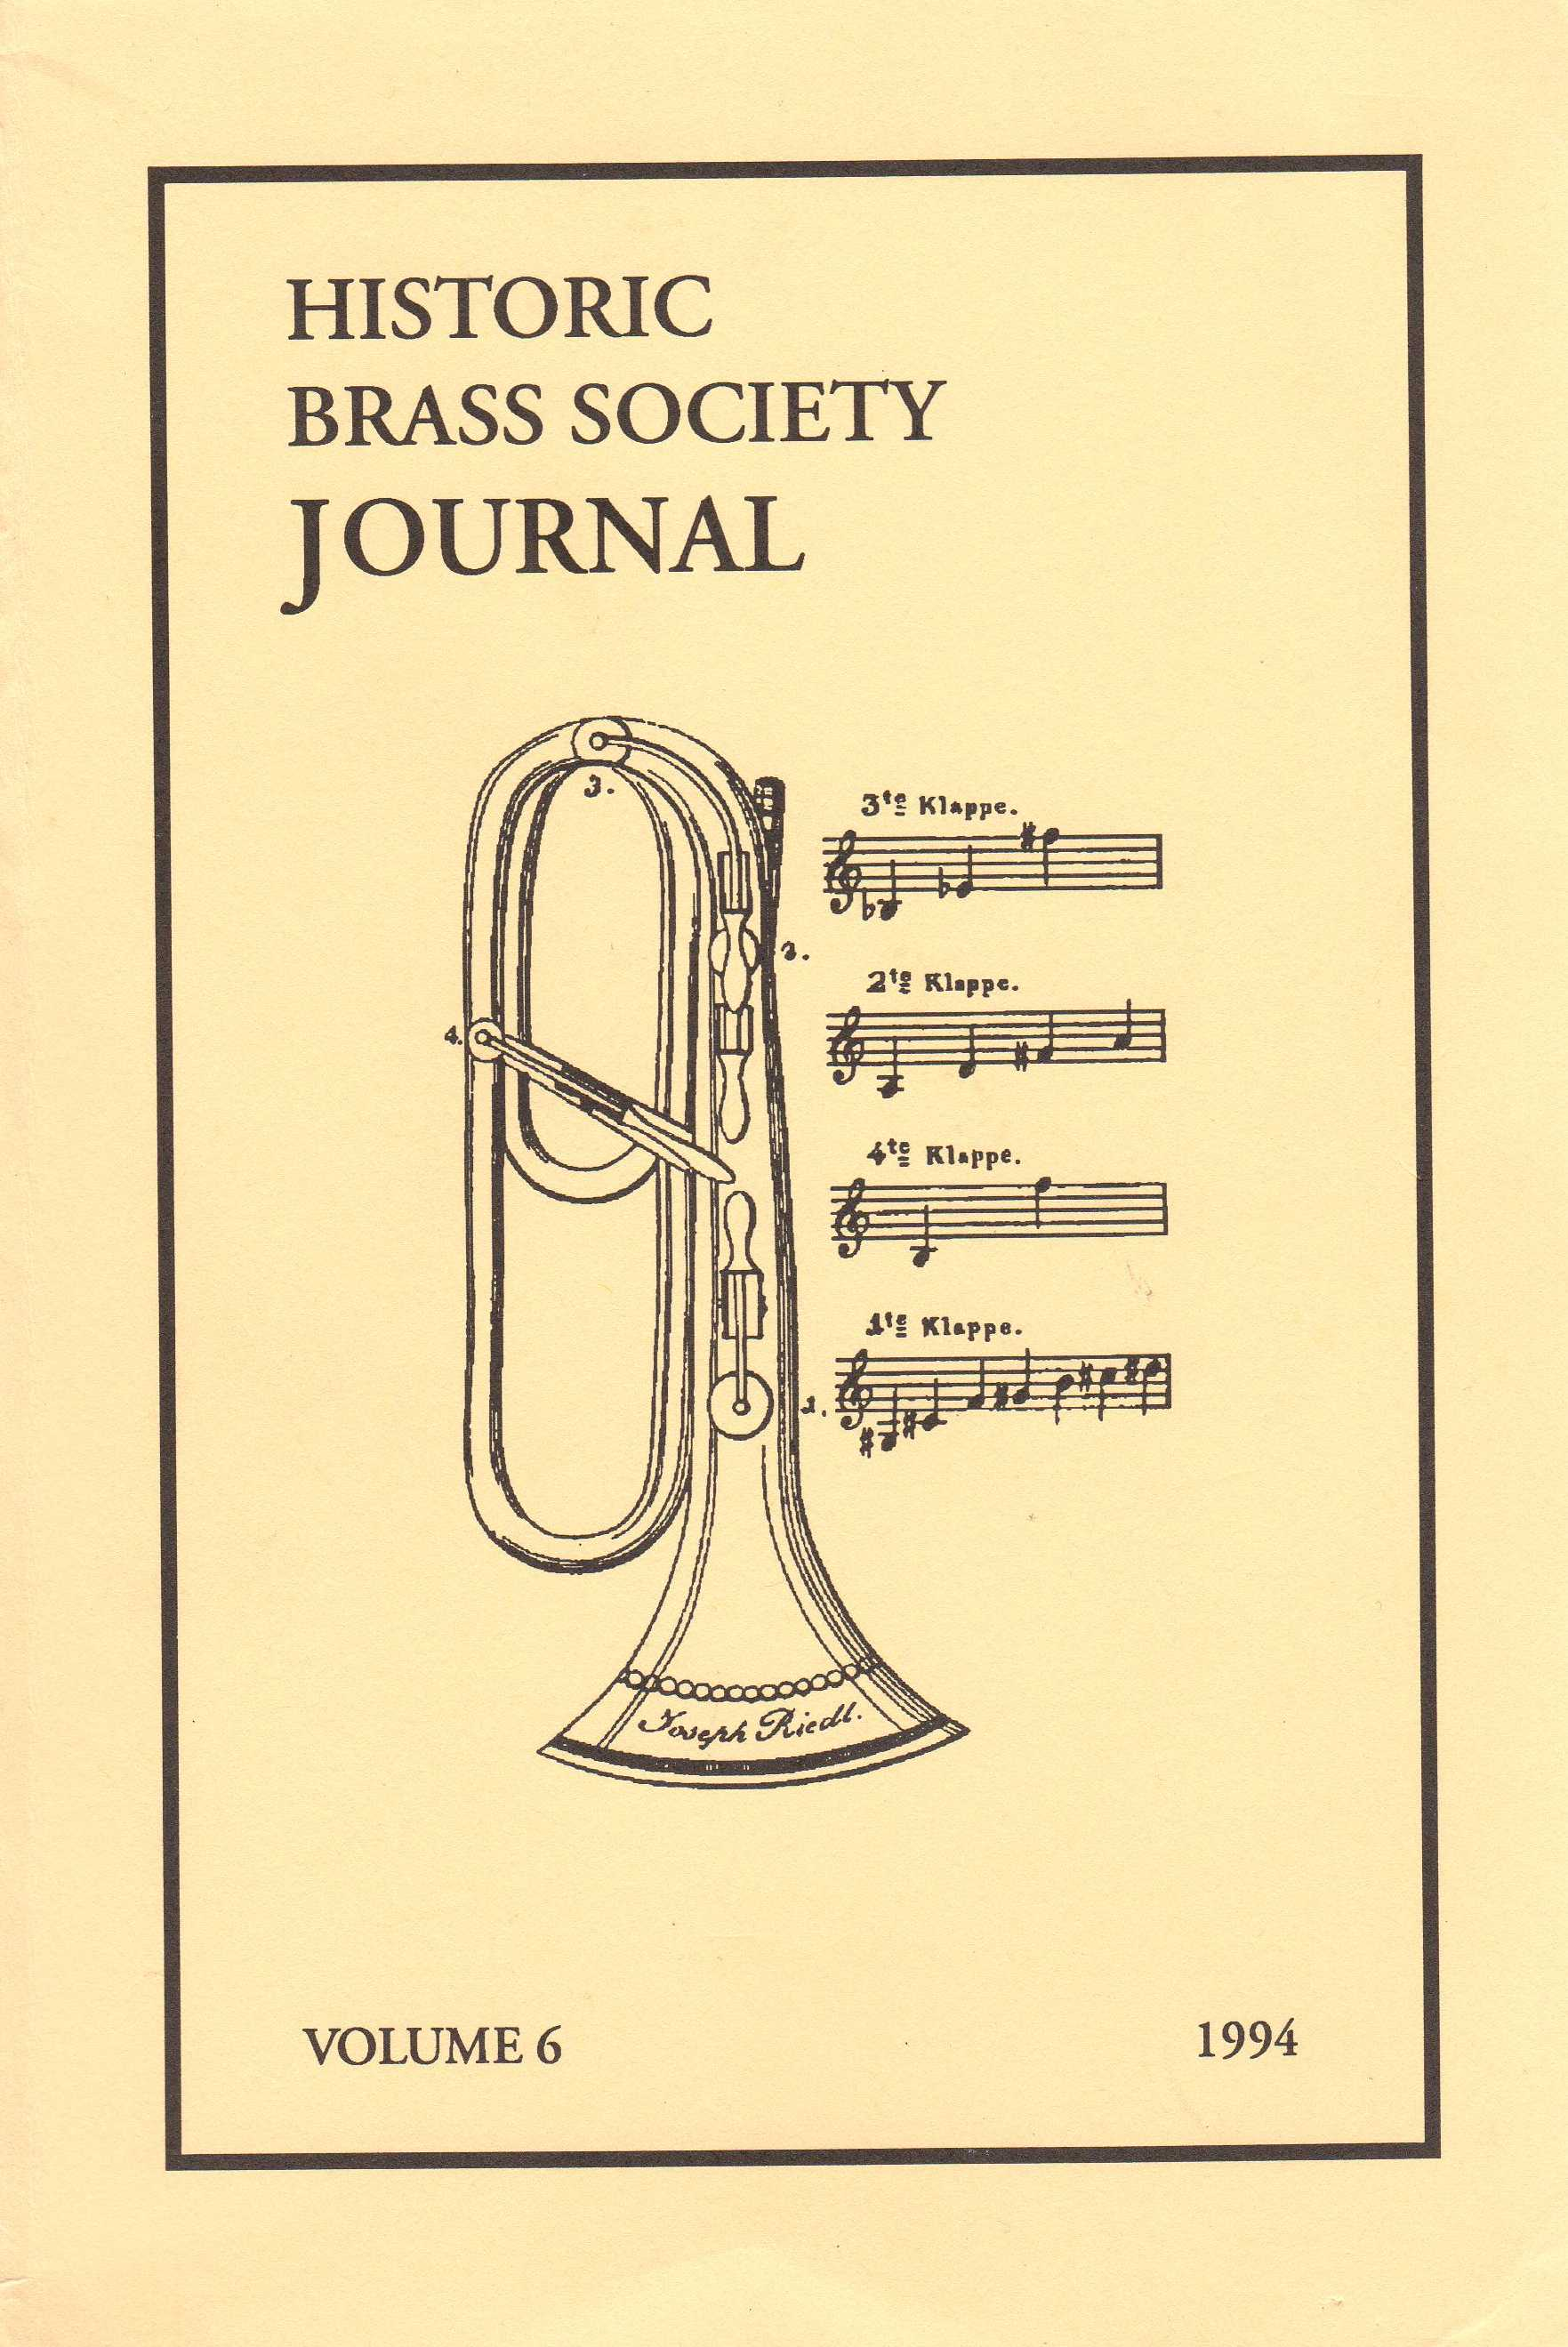 Historic Brass Journal - Volume 6 - 1994